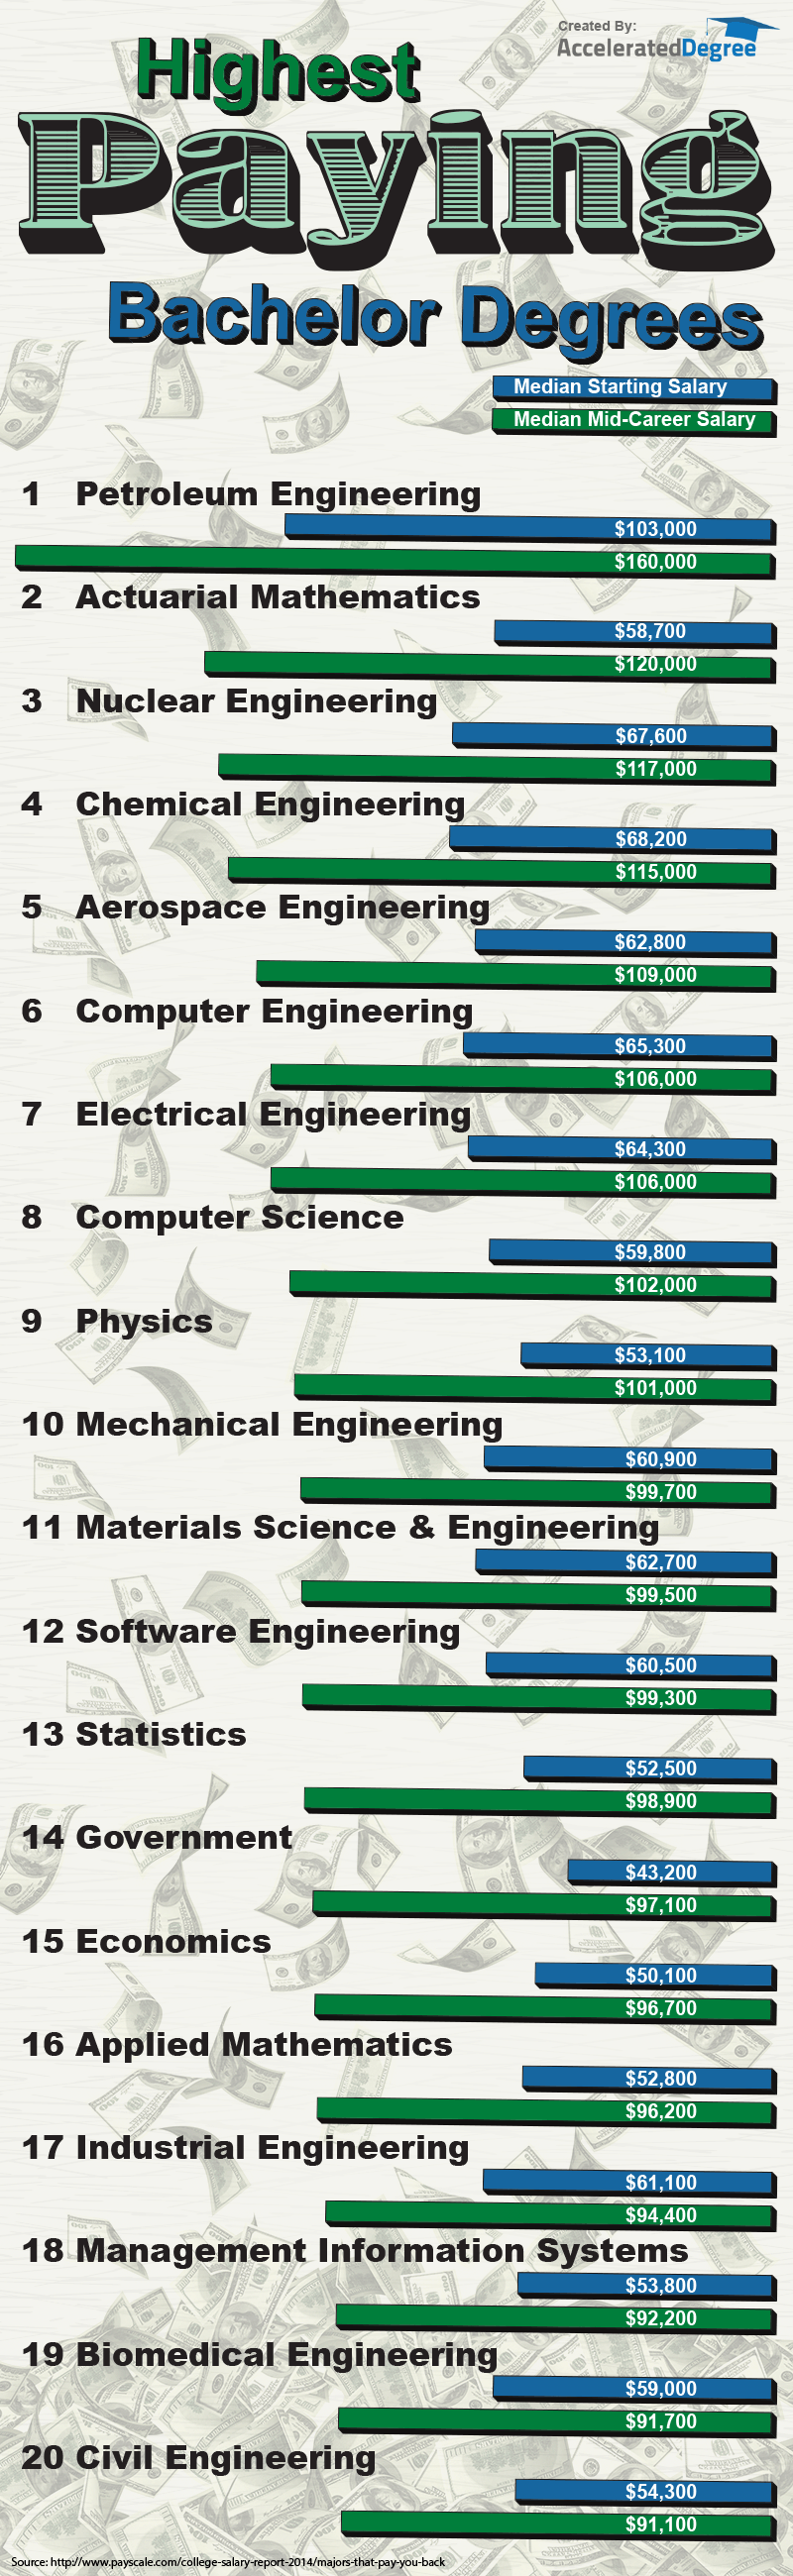 Highest-Paying-Bachelor-Degrees